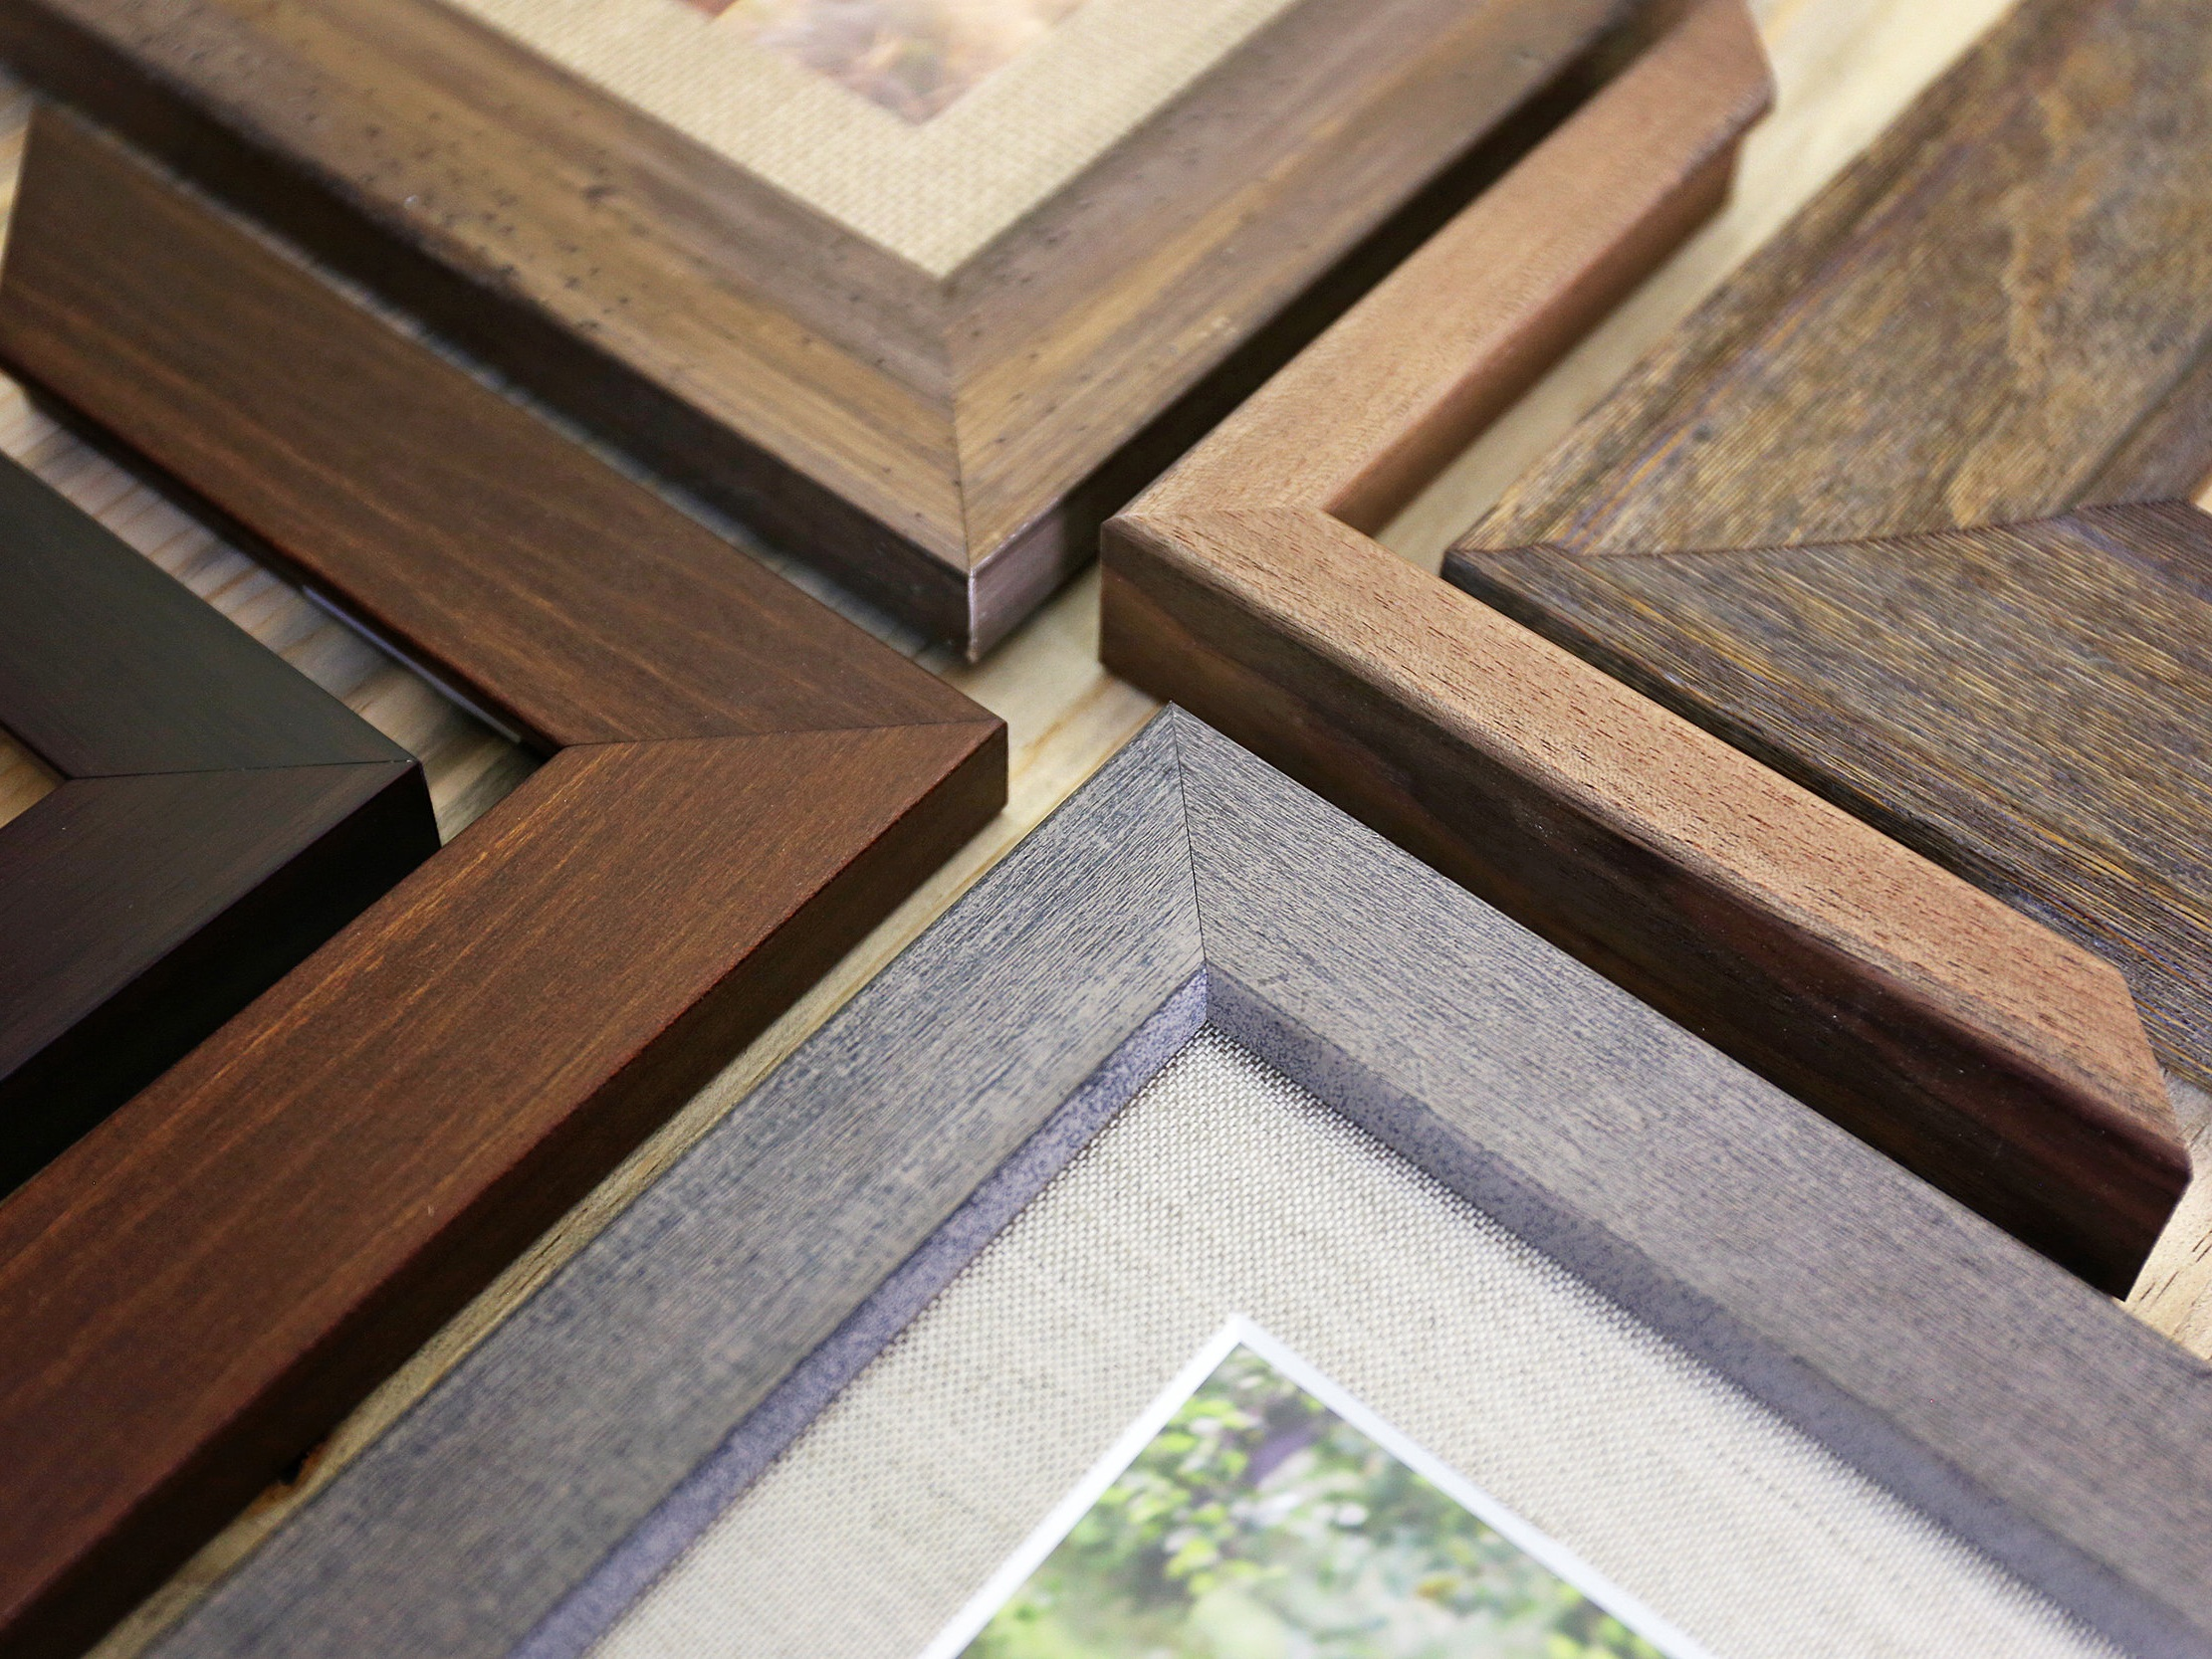 Earth Gallery & Frames - A full service art and framing company in Garberville, with a large selection of high quality picture framing moulding & mat samples for your framing needs.